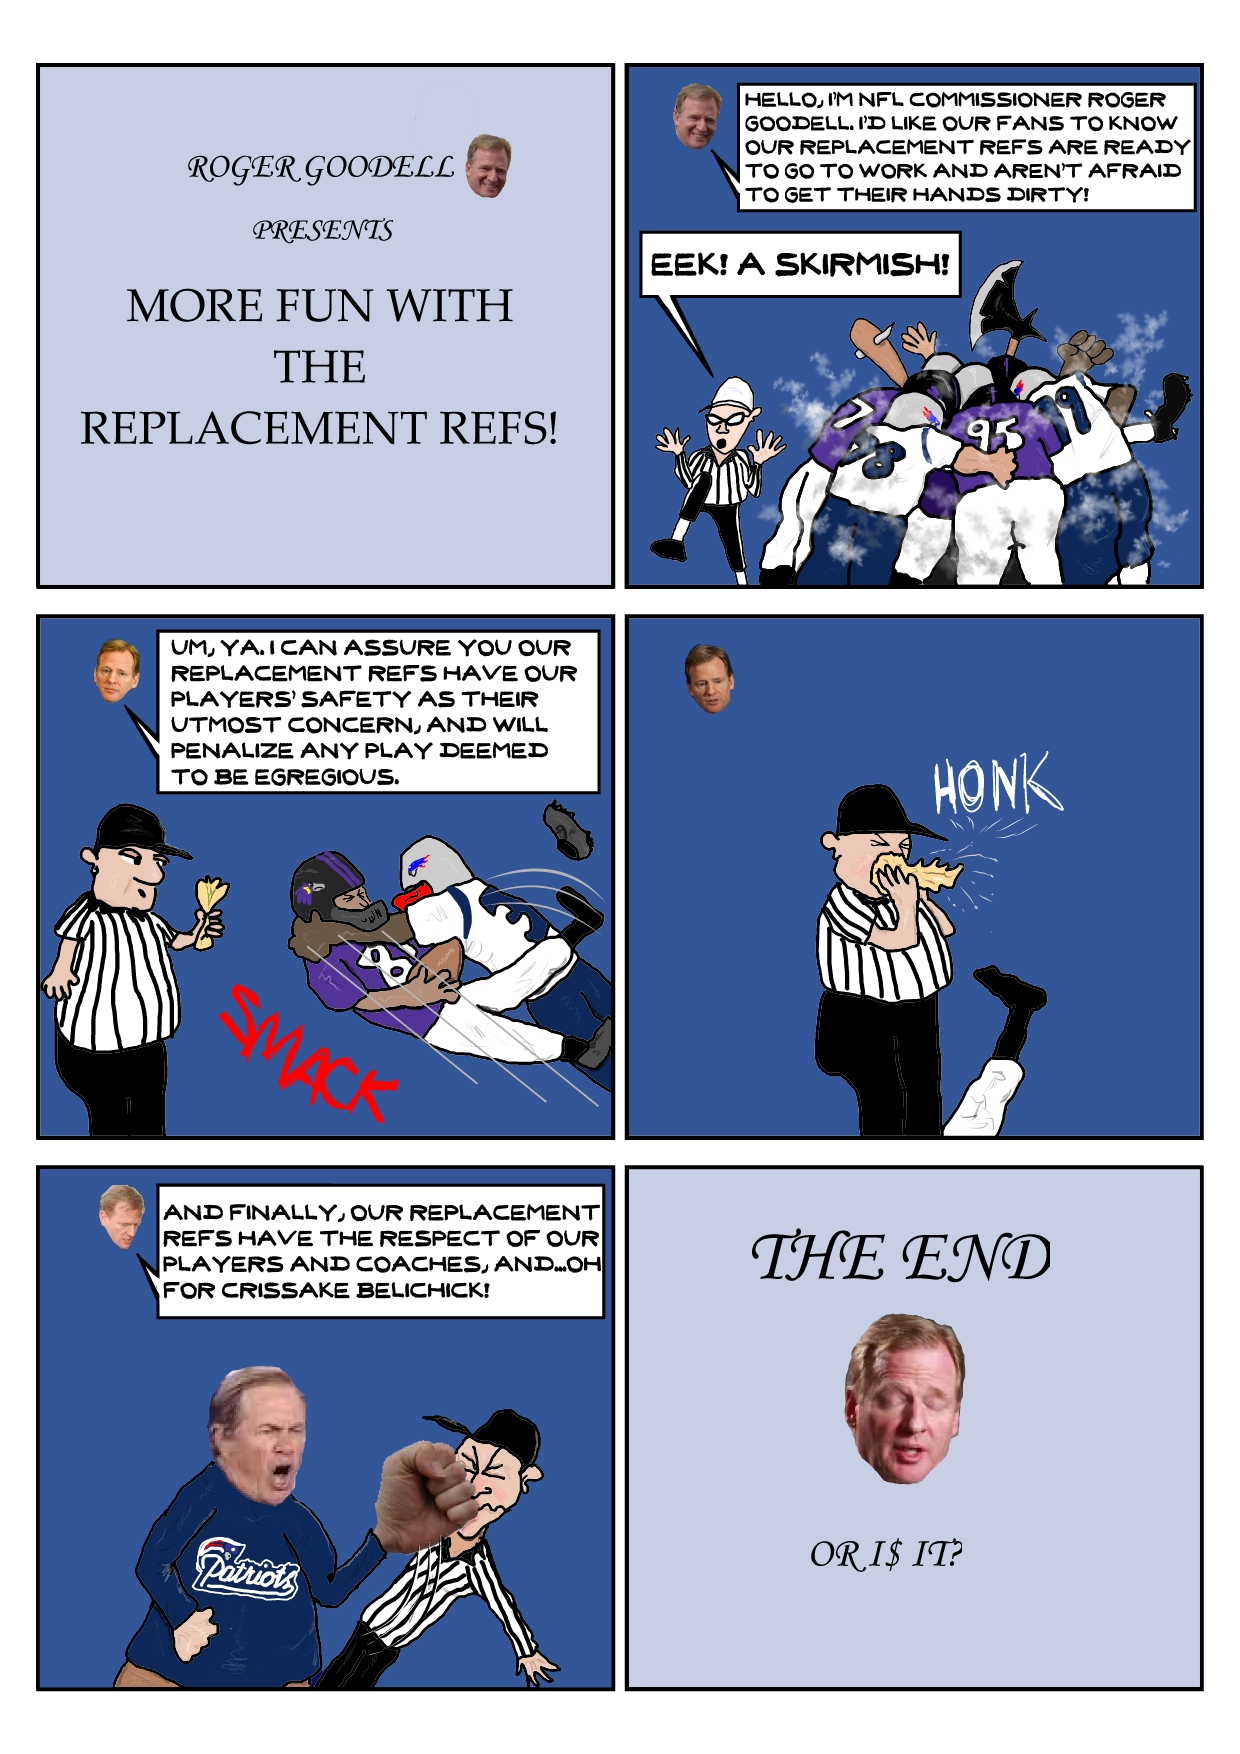 More Fun With The Replacement Refs